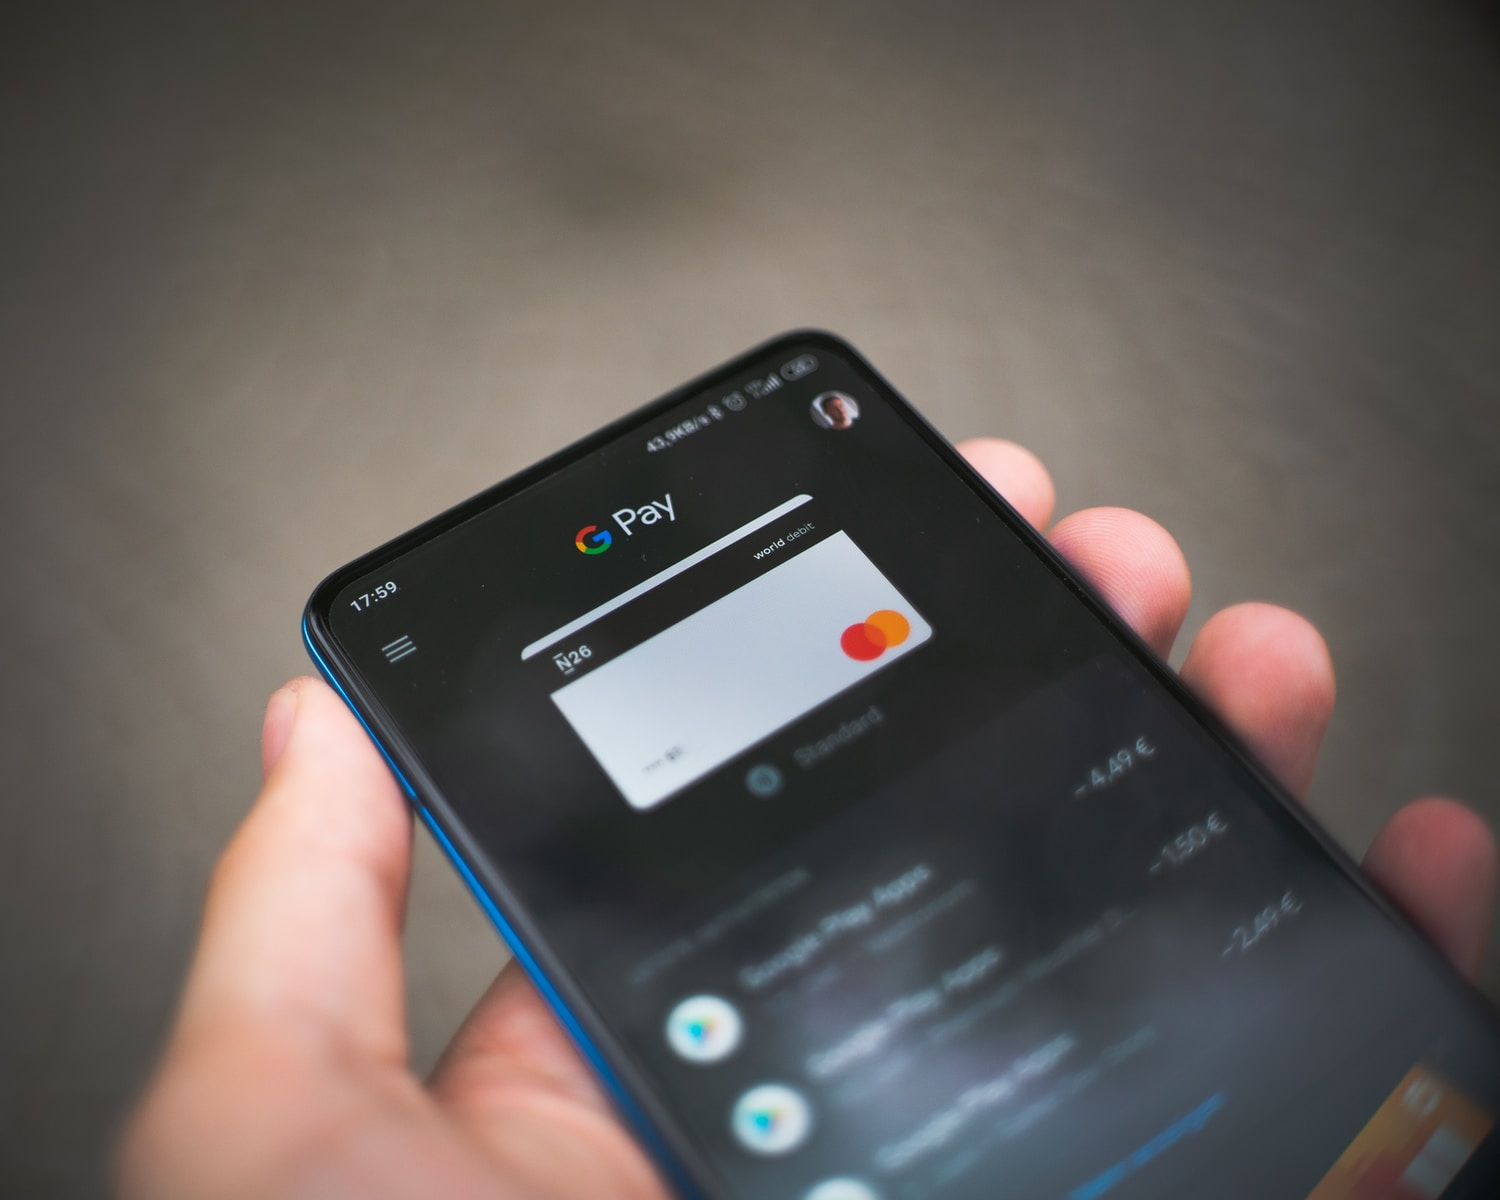 black samsung android smartphone displaying icons